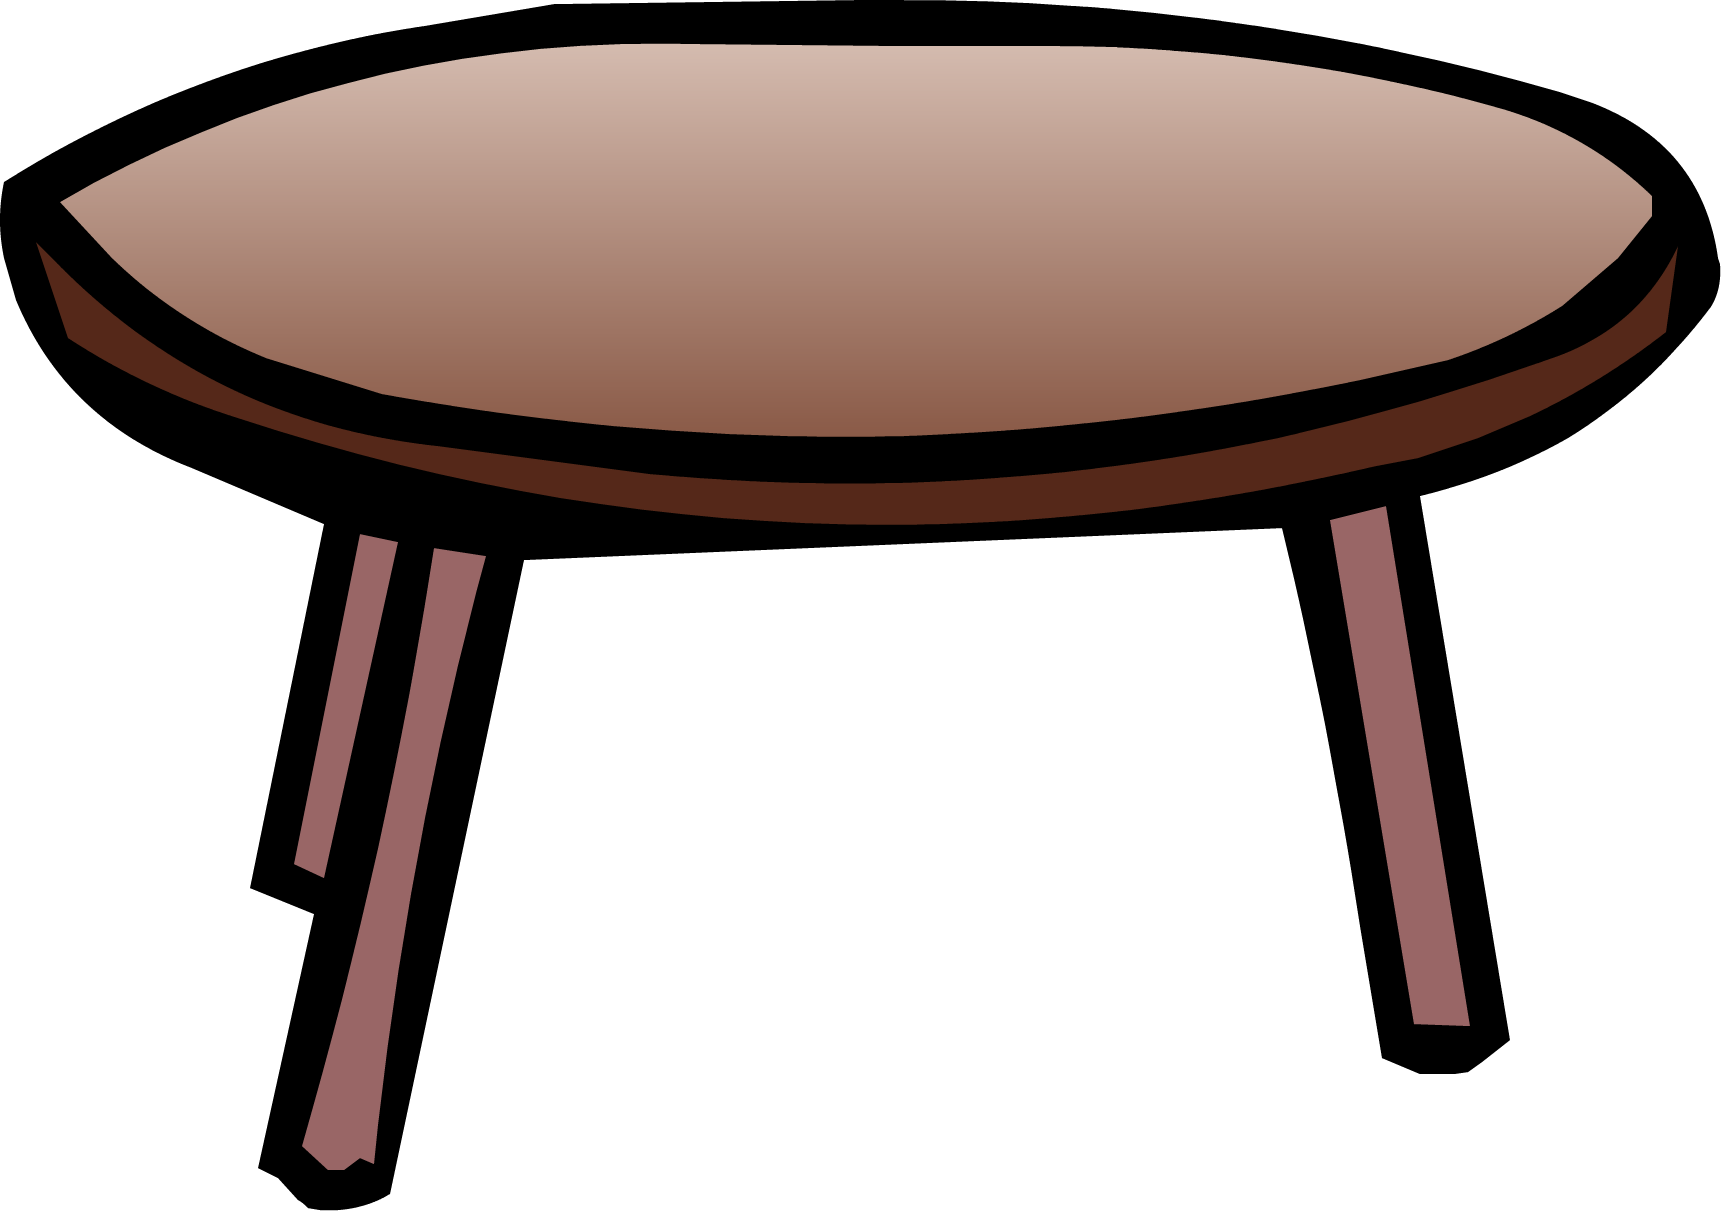 Image coffee table 33 png club penguin wiki fandom for Table wikipedia